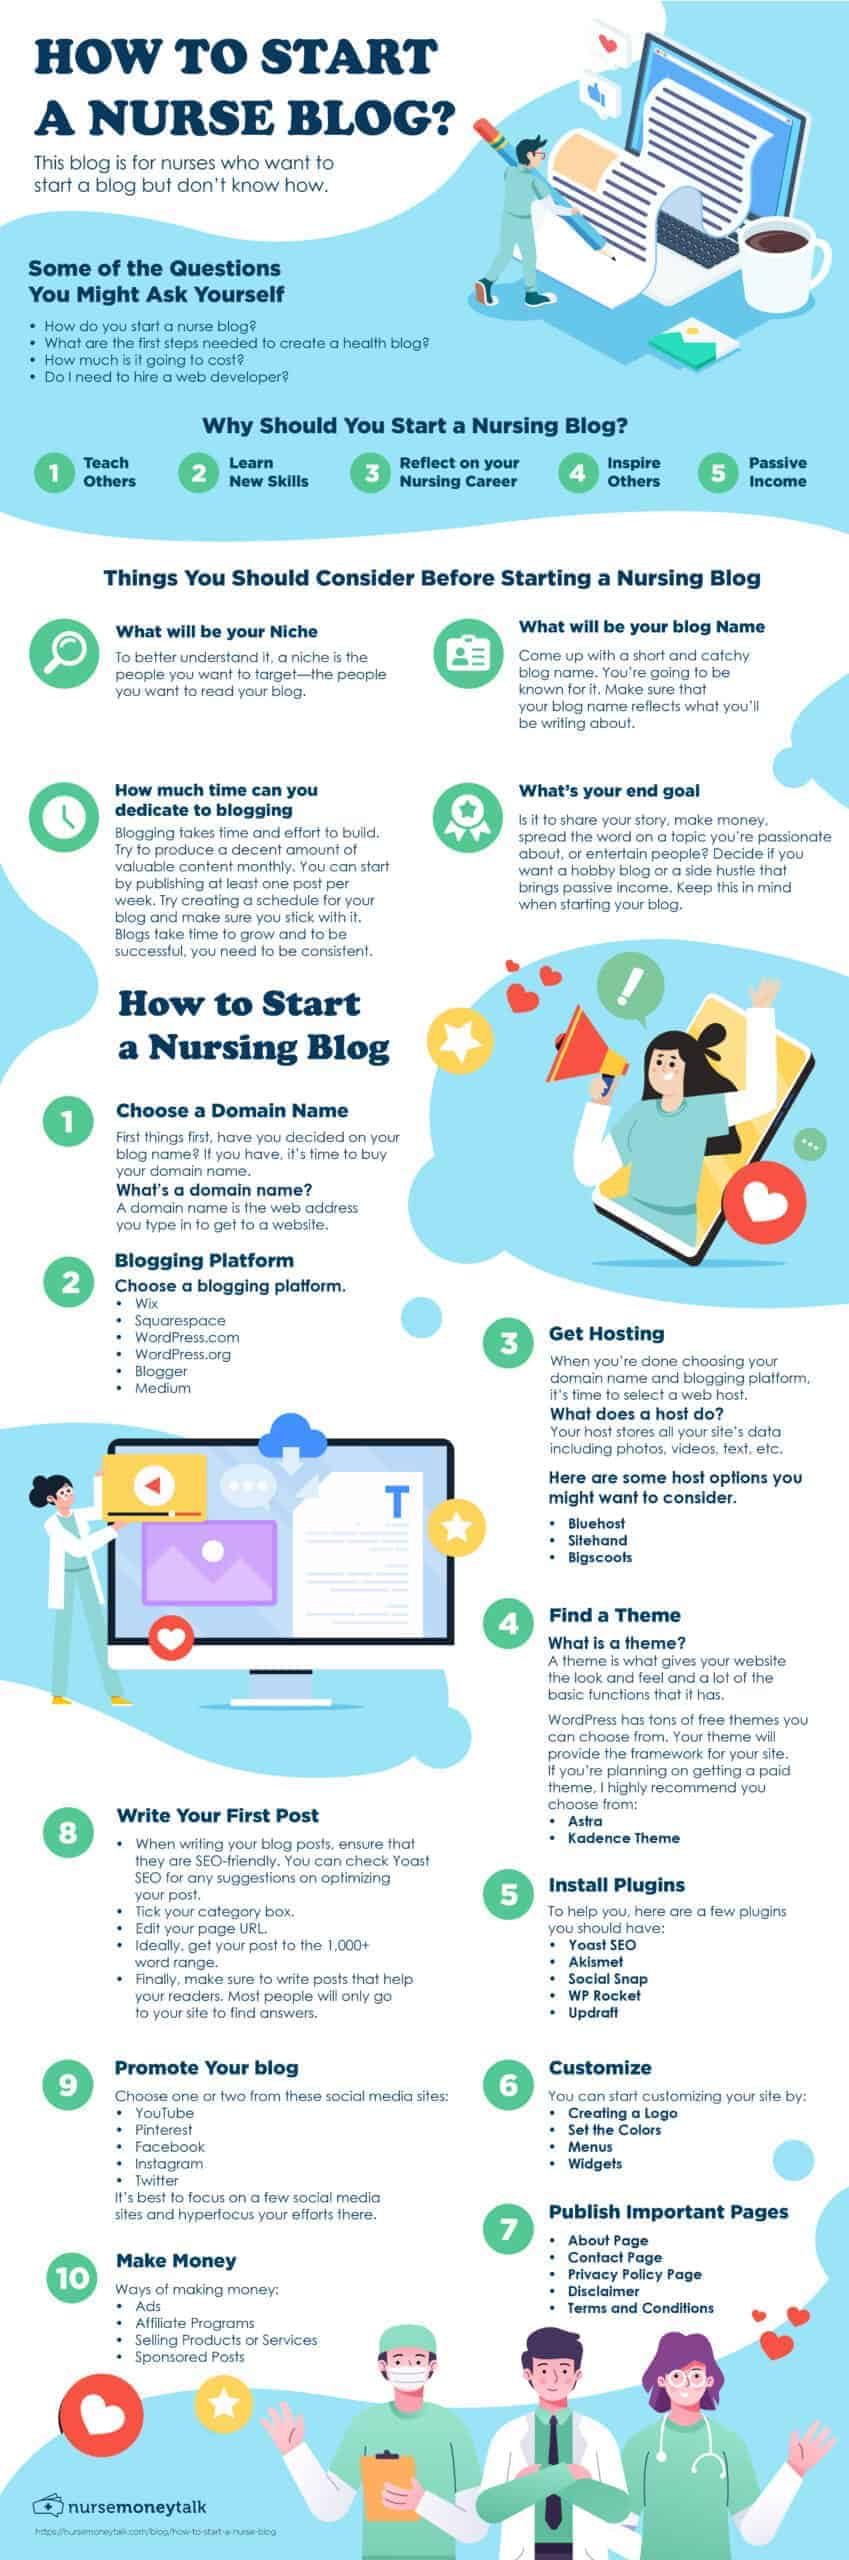 An infographic about how to start a nurse blog